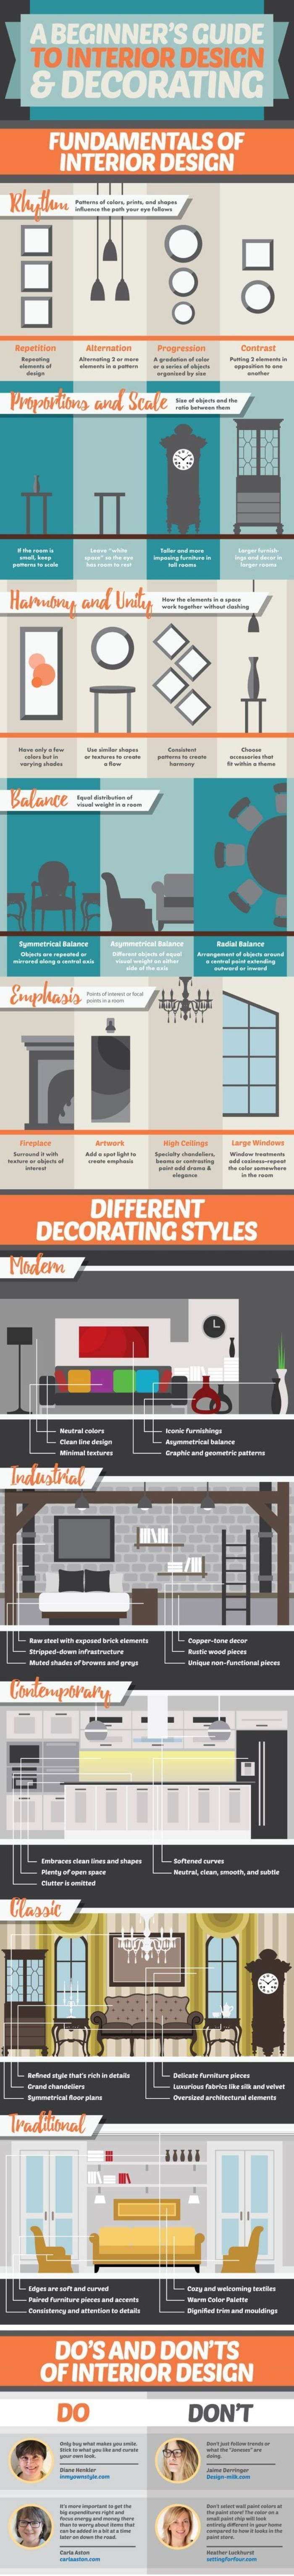 Awesome Tips! The Beginneru0027s Guide To Interior Design And Decorating!  Novice Designers And Decorators Will Find Helpful Advice And Ideas Here!